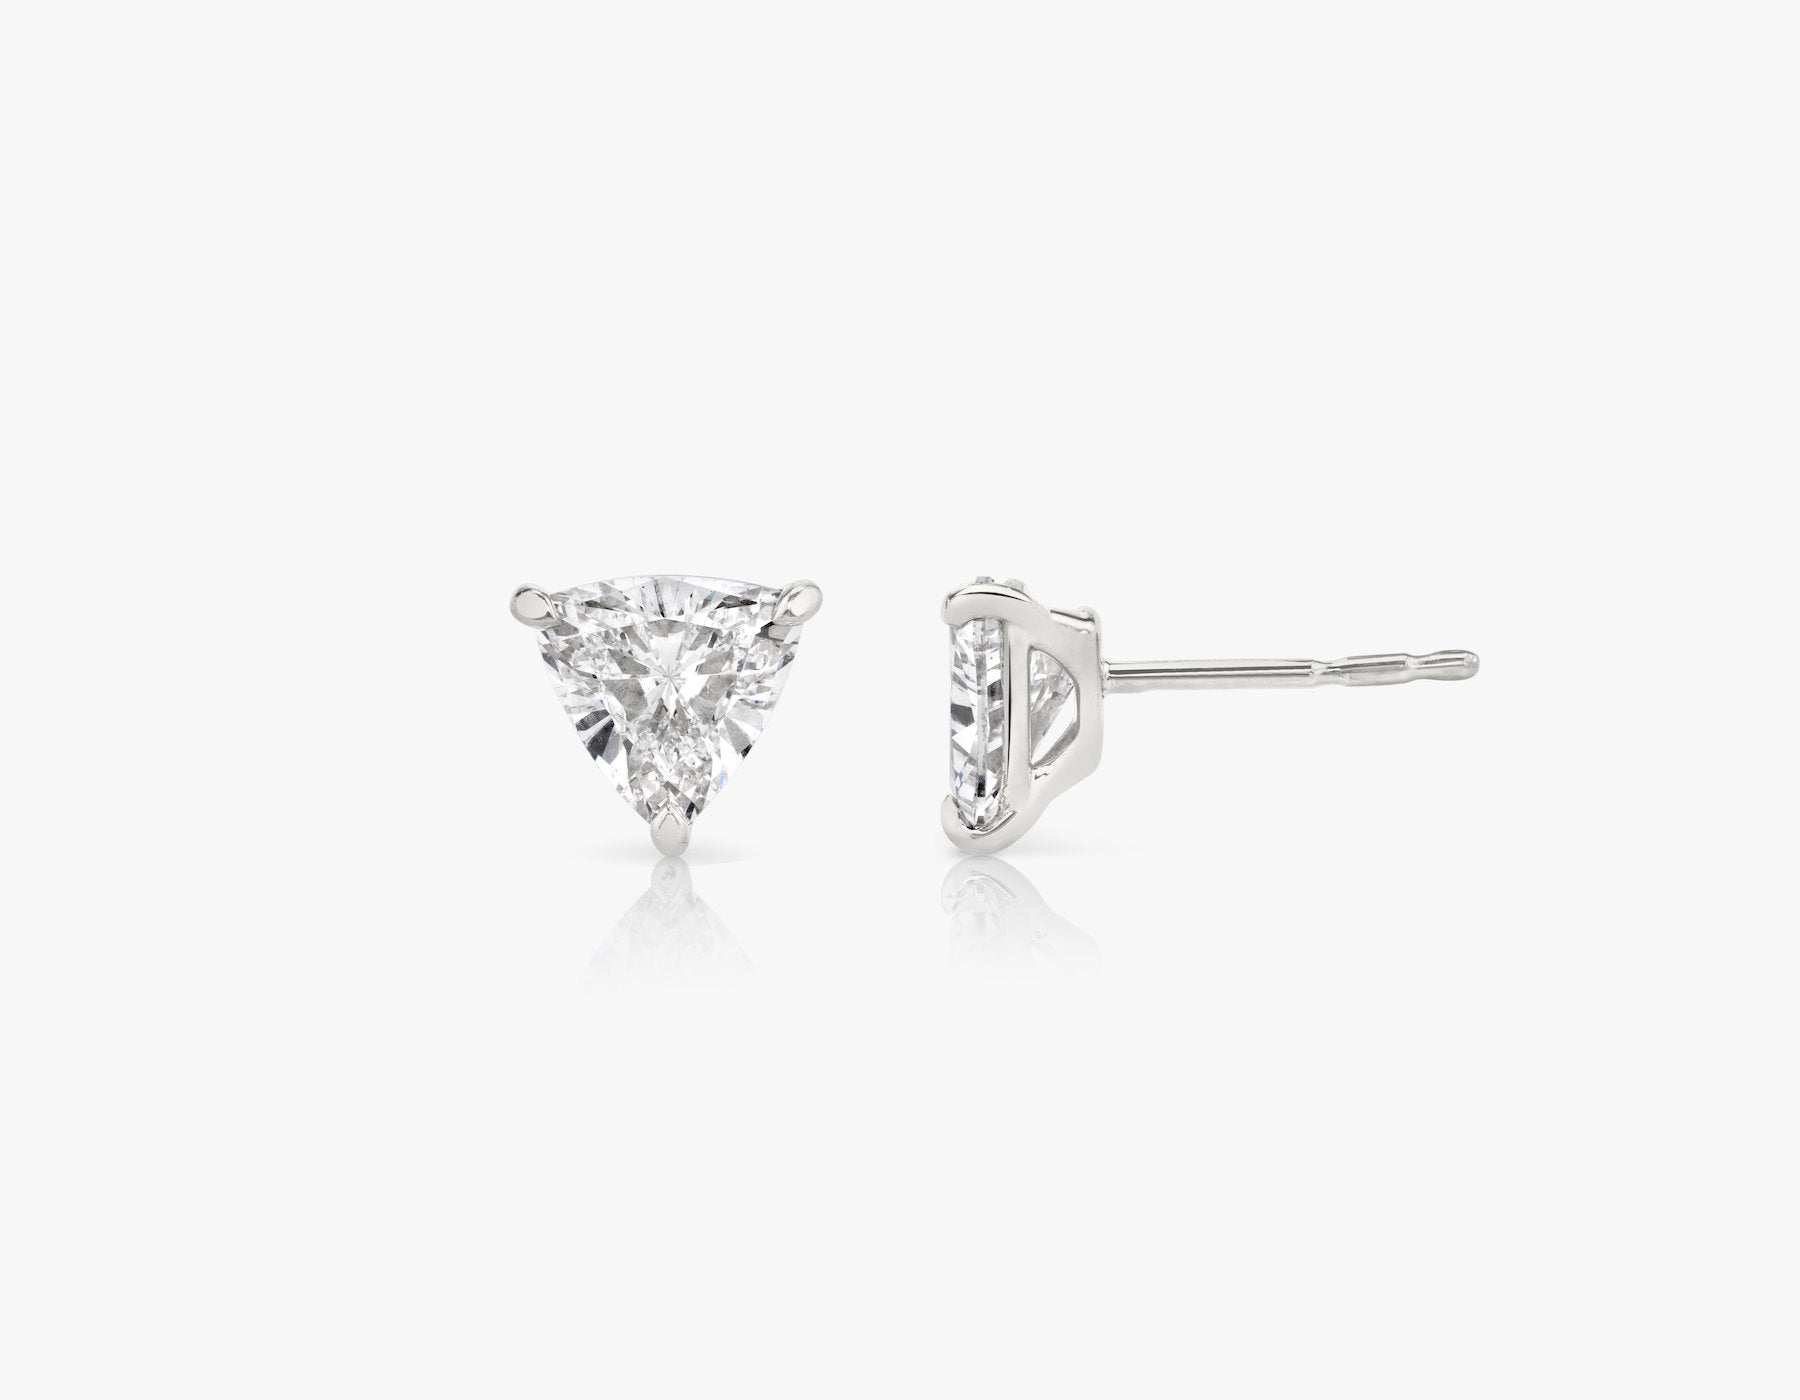 Vrai 14k solid gold Solitaire Trillion Diamond Studs sustainably created triangle diamonds prong set earrings side view, 14K White Gold